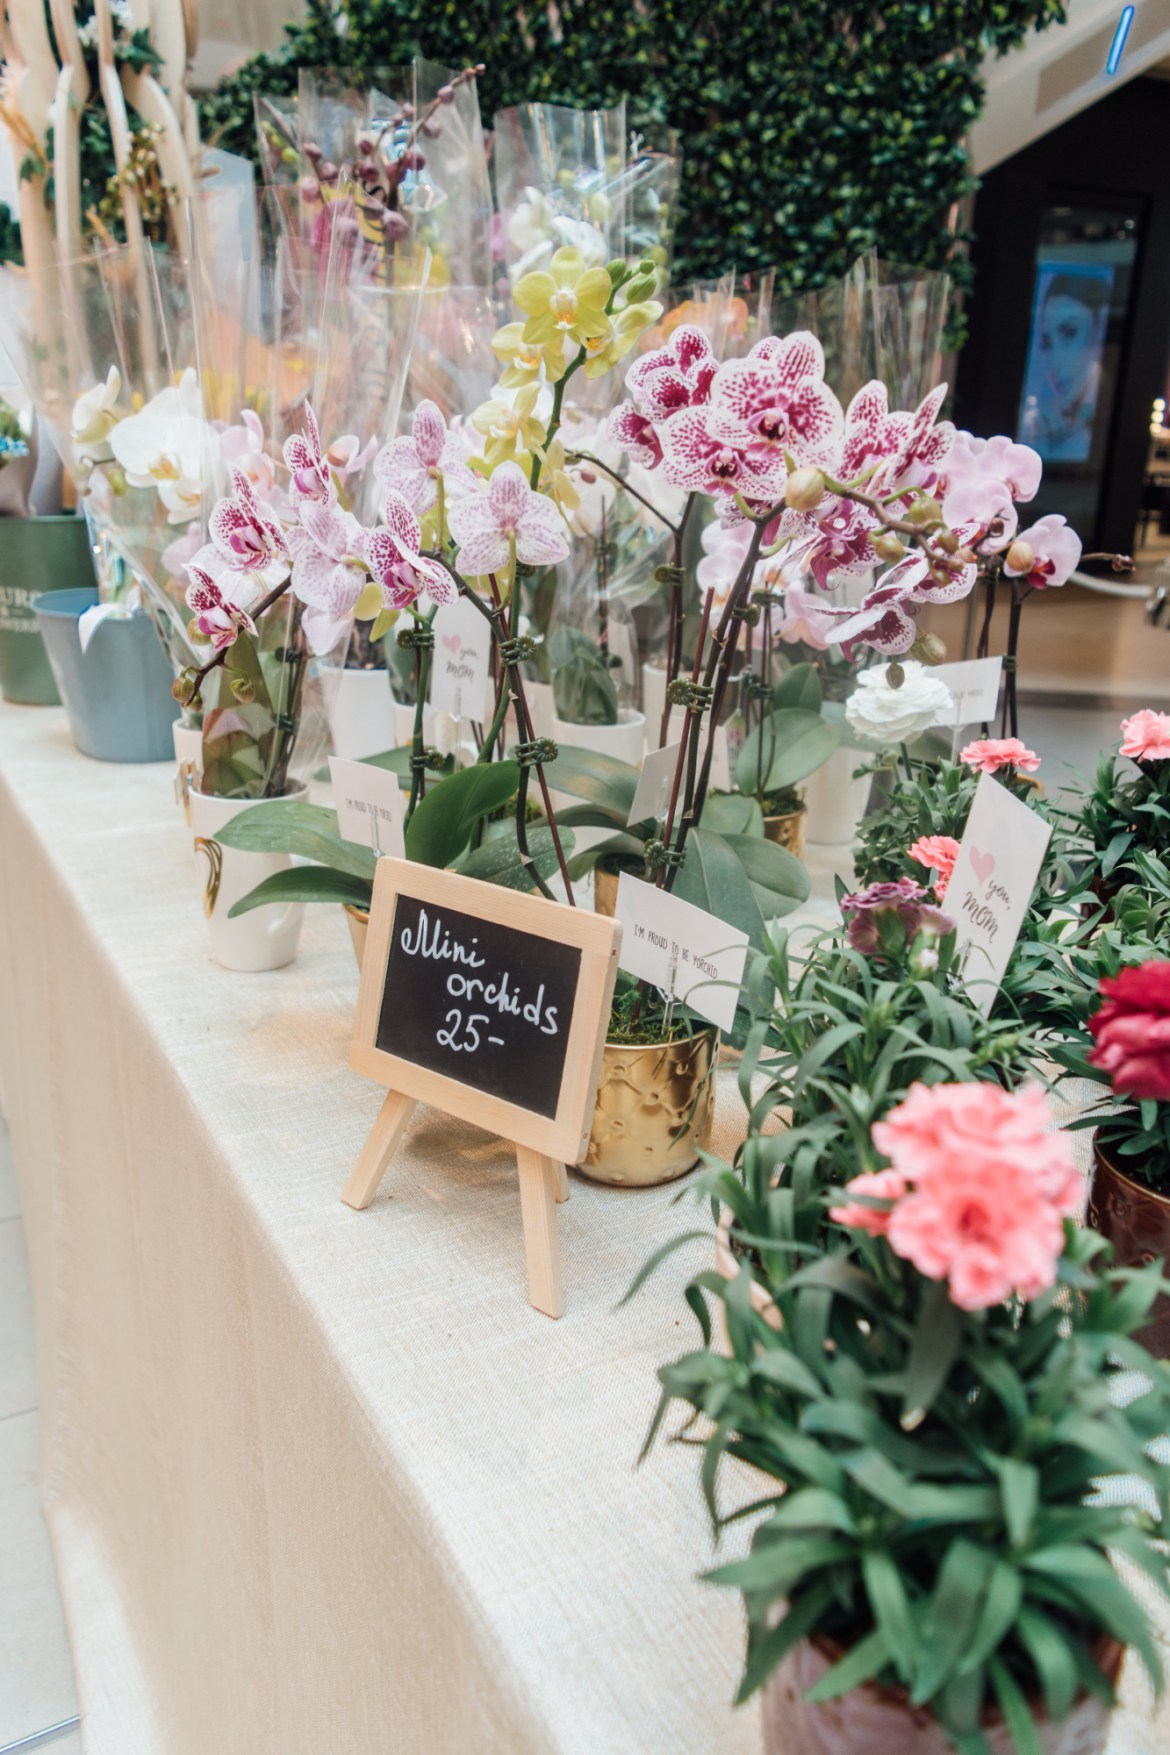 Mother's Day Flower Market at STC